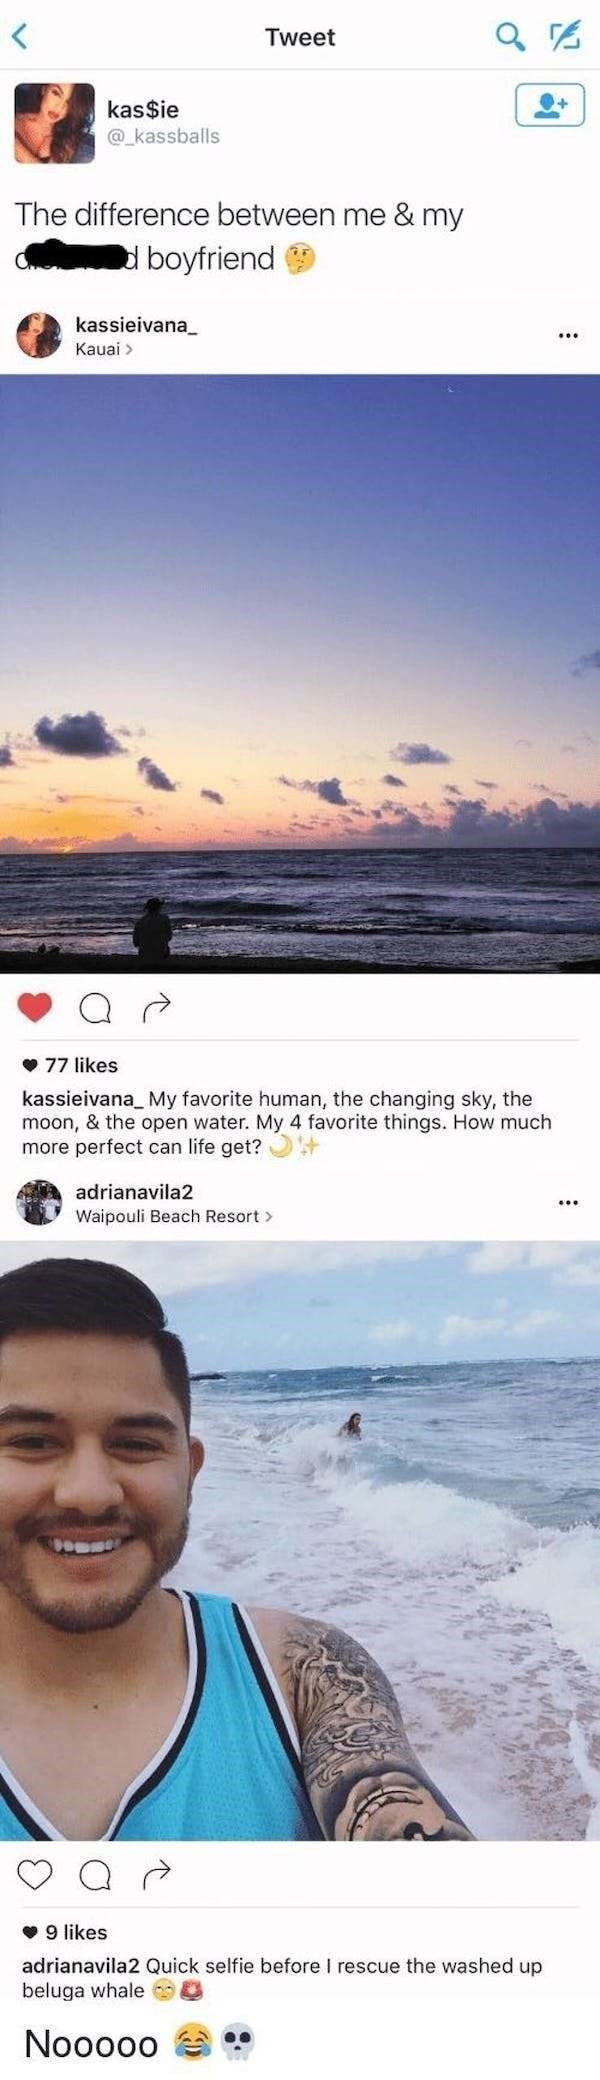 Sky - Tweet kas$ie @_kassballs The difference between me & my d boyfriend kassieivana_ Kauai > • 77 likes kassieivana_ My favorite human, the changing sky, the moon, & the open water. My 4 favorite things. How much more perfect can life get? + adrianavila2 Waipouli Beach Resort > v 9 likes adrianavila2 Quick selfie before I rescue the washed up beluga whale Nooooo